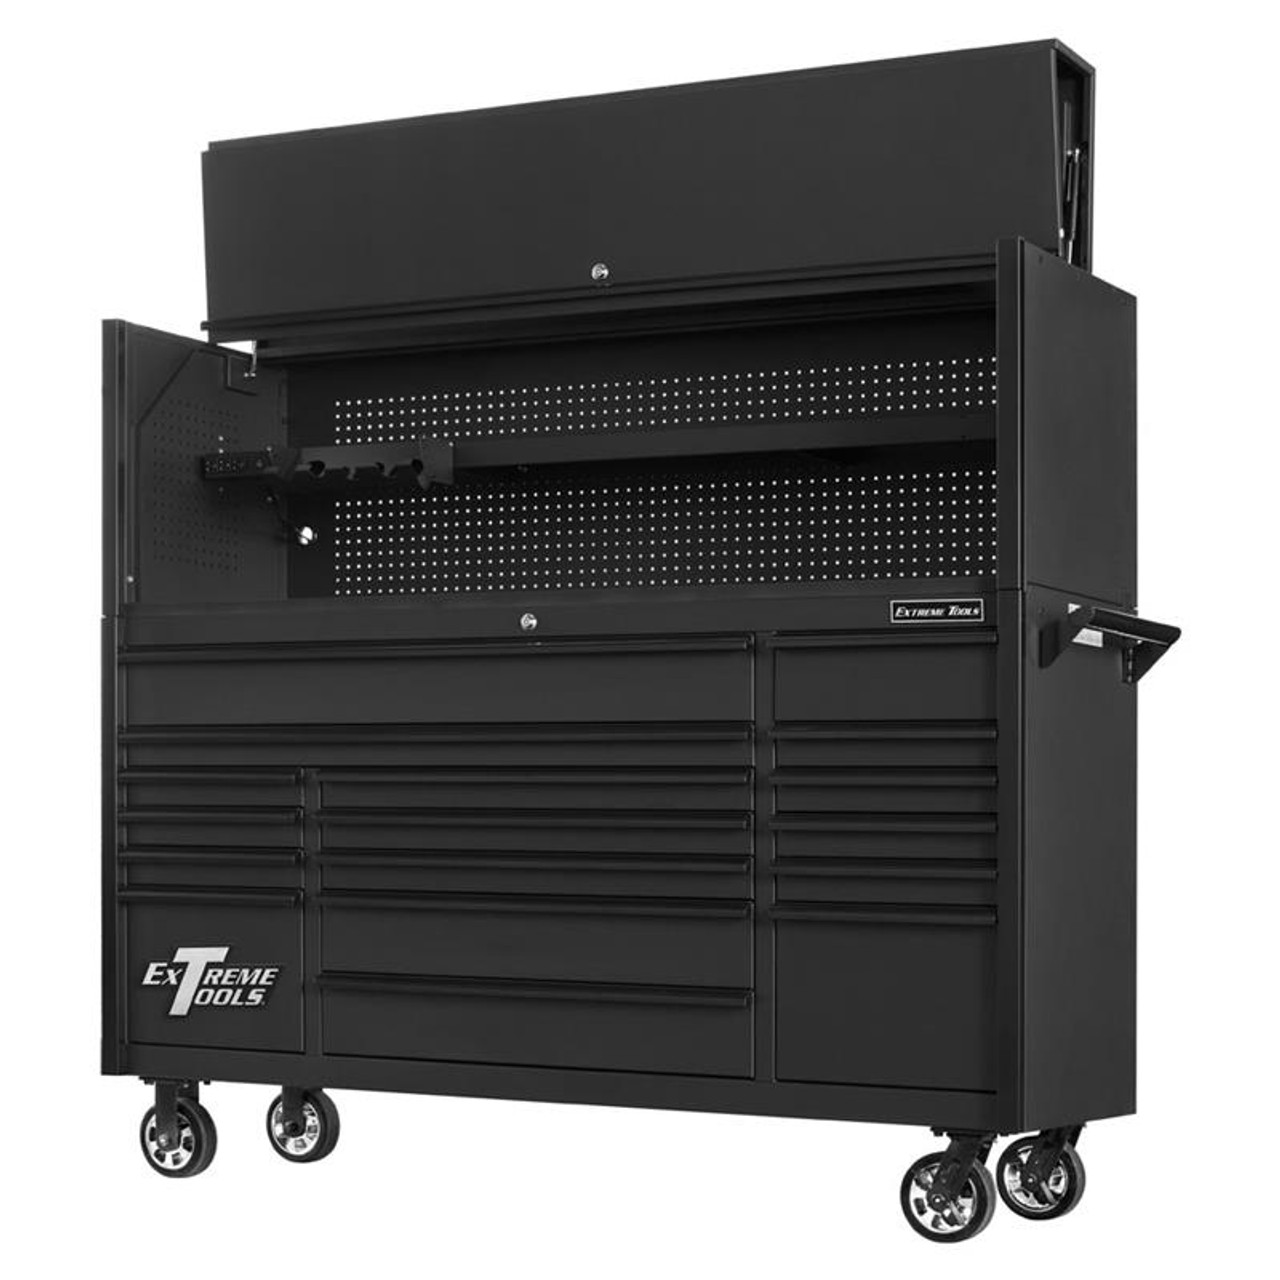 """Extreme Tools DX722117RCMBBK and DX722101HCMBBK Combo - DX Series 72"""", 17 Drawer, 21"""" Deep Roller Cabinet and Matching Hutch - Matte Black with Black Drawer Pulls"""